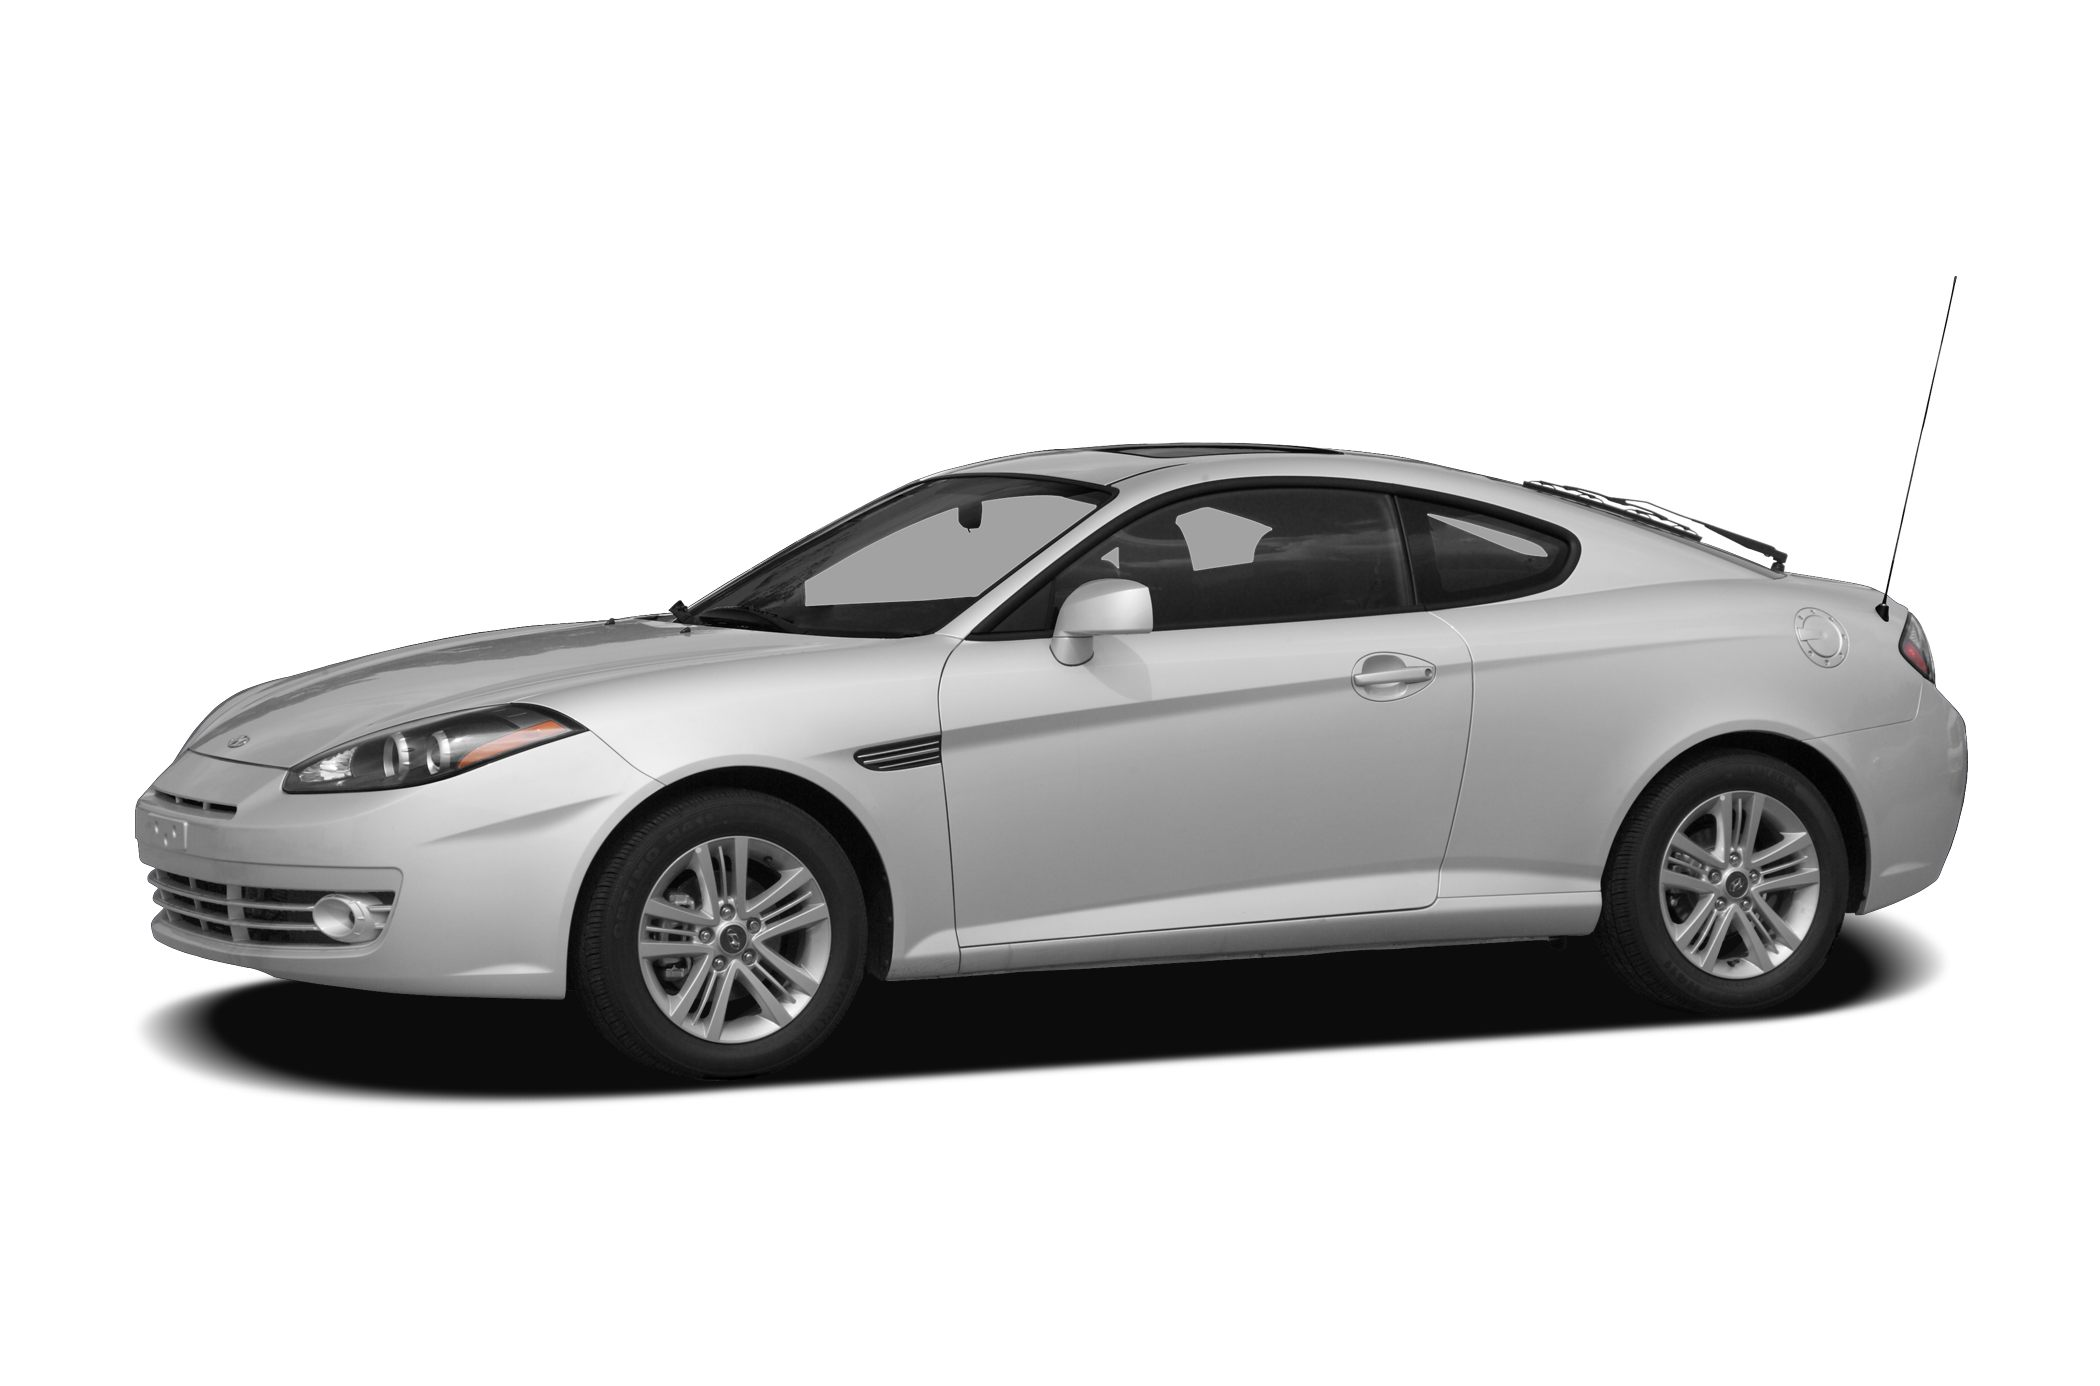 Used Cars Near Me Under 3000 Best Of Pflugerville Tx Used Cars For